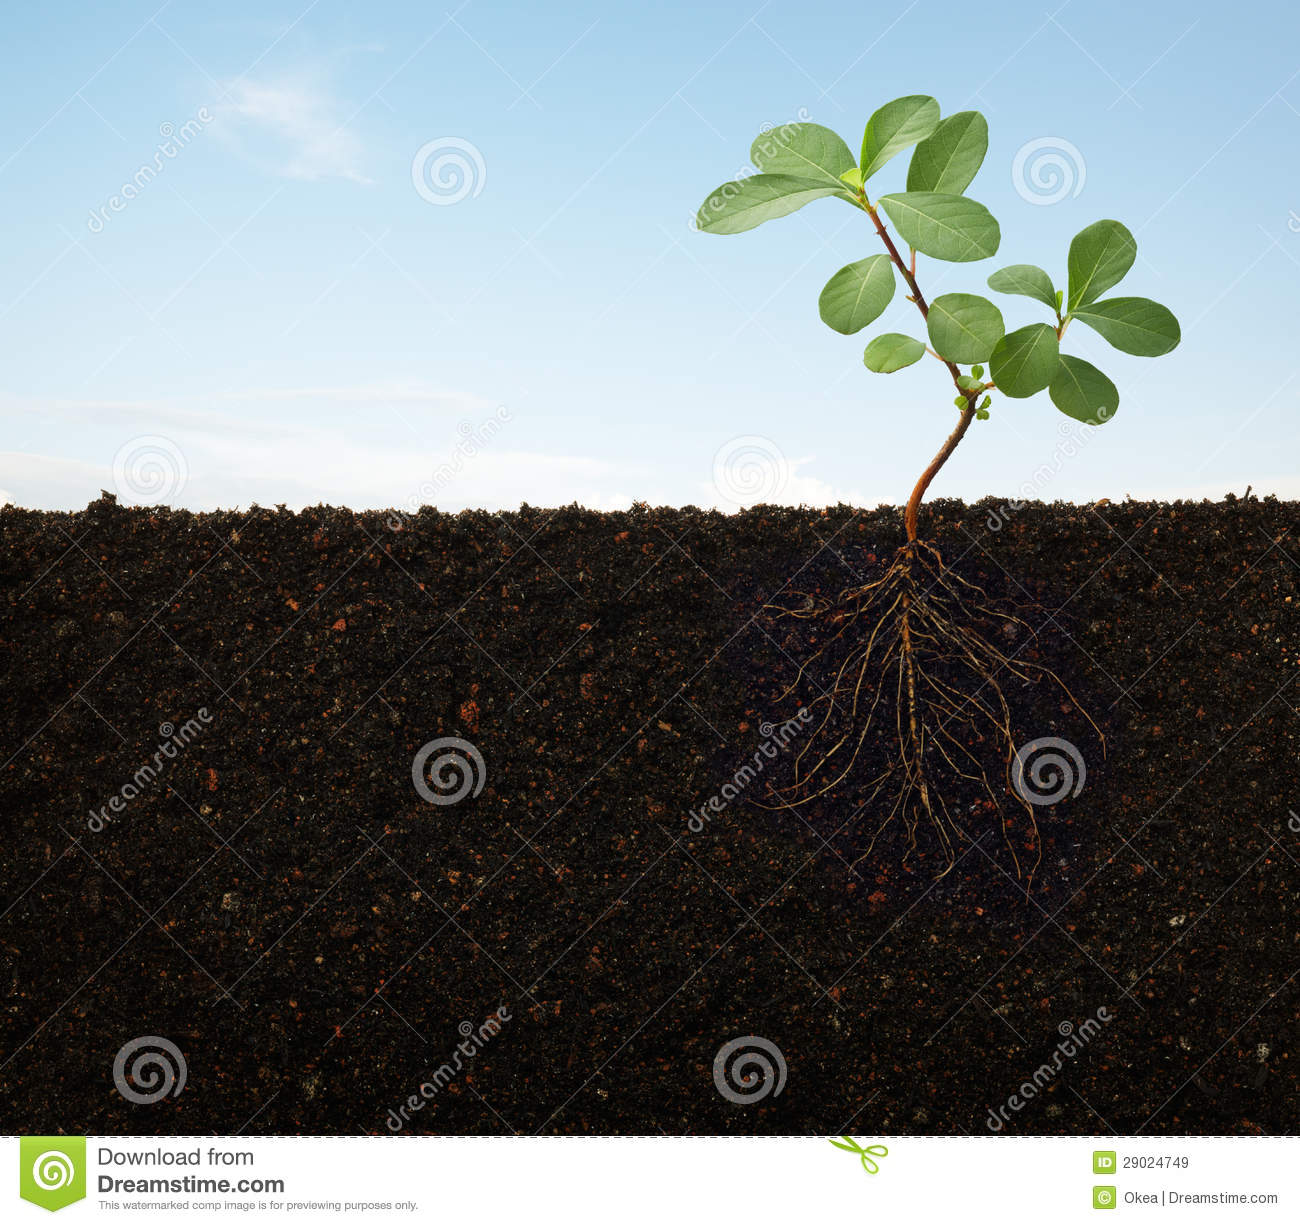 Roots of a plant